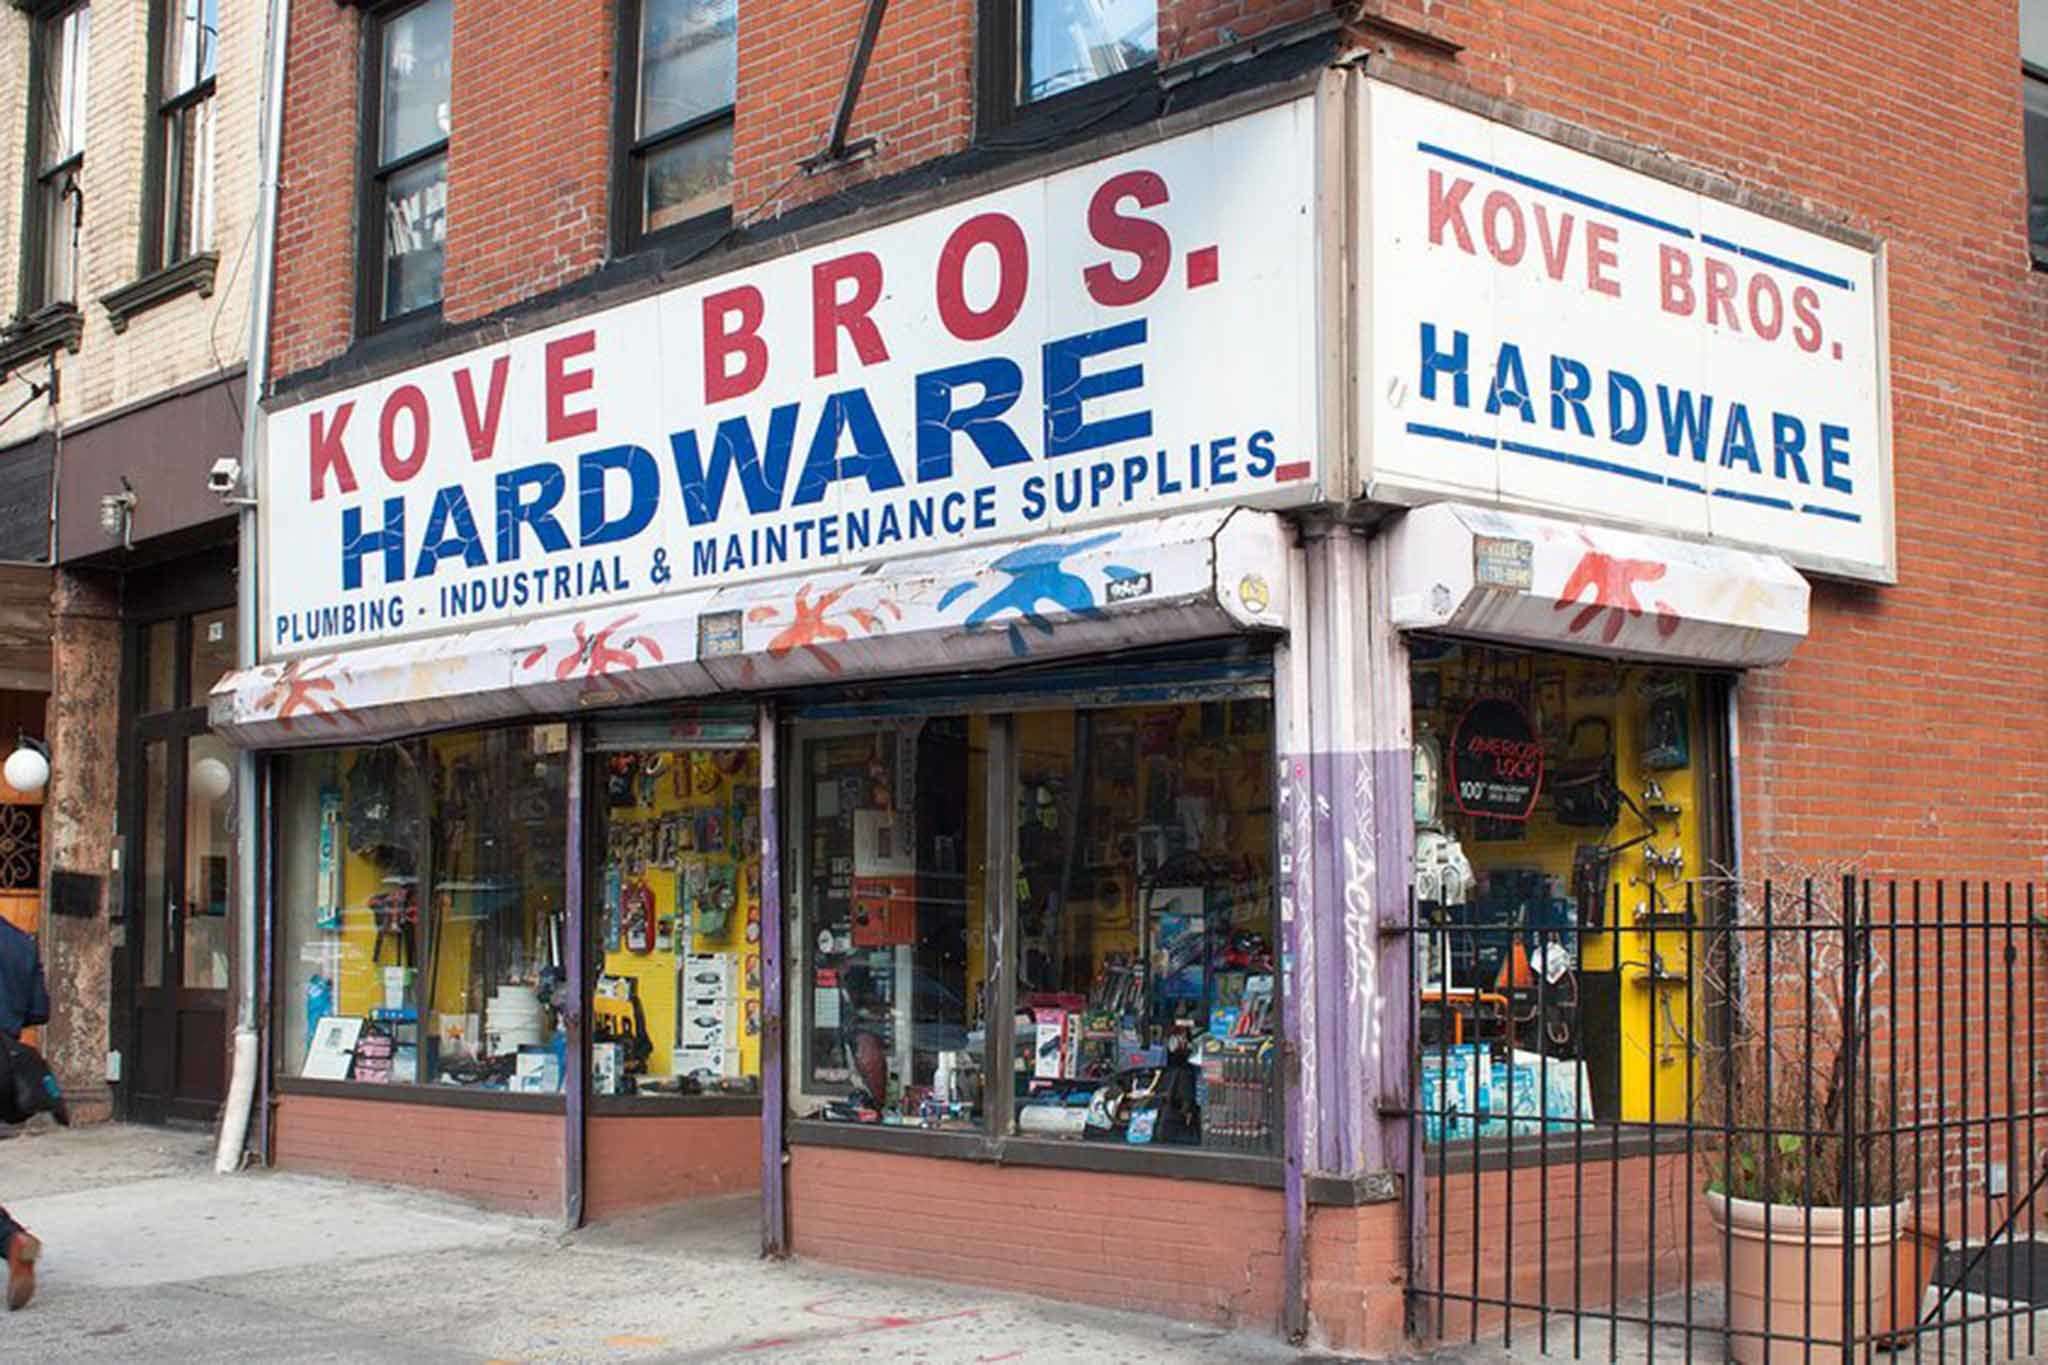 Kove Brothers Hardware